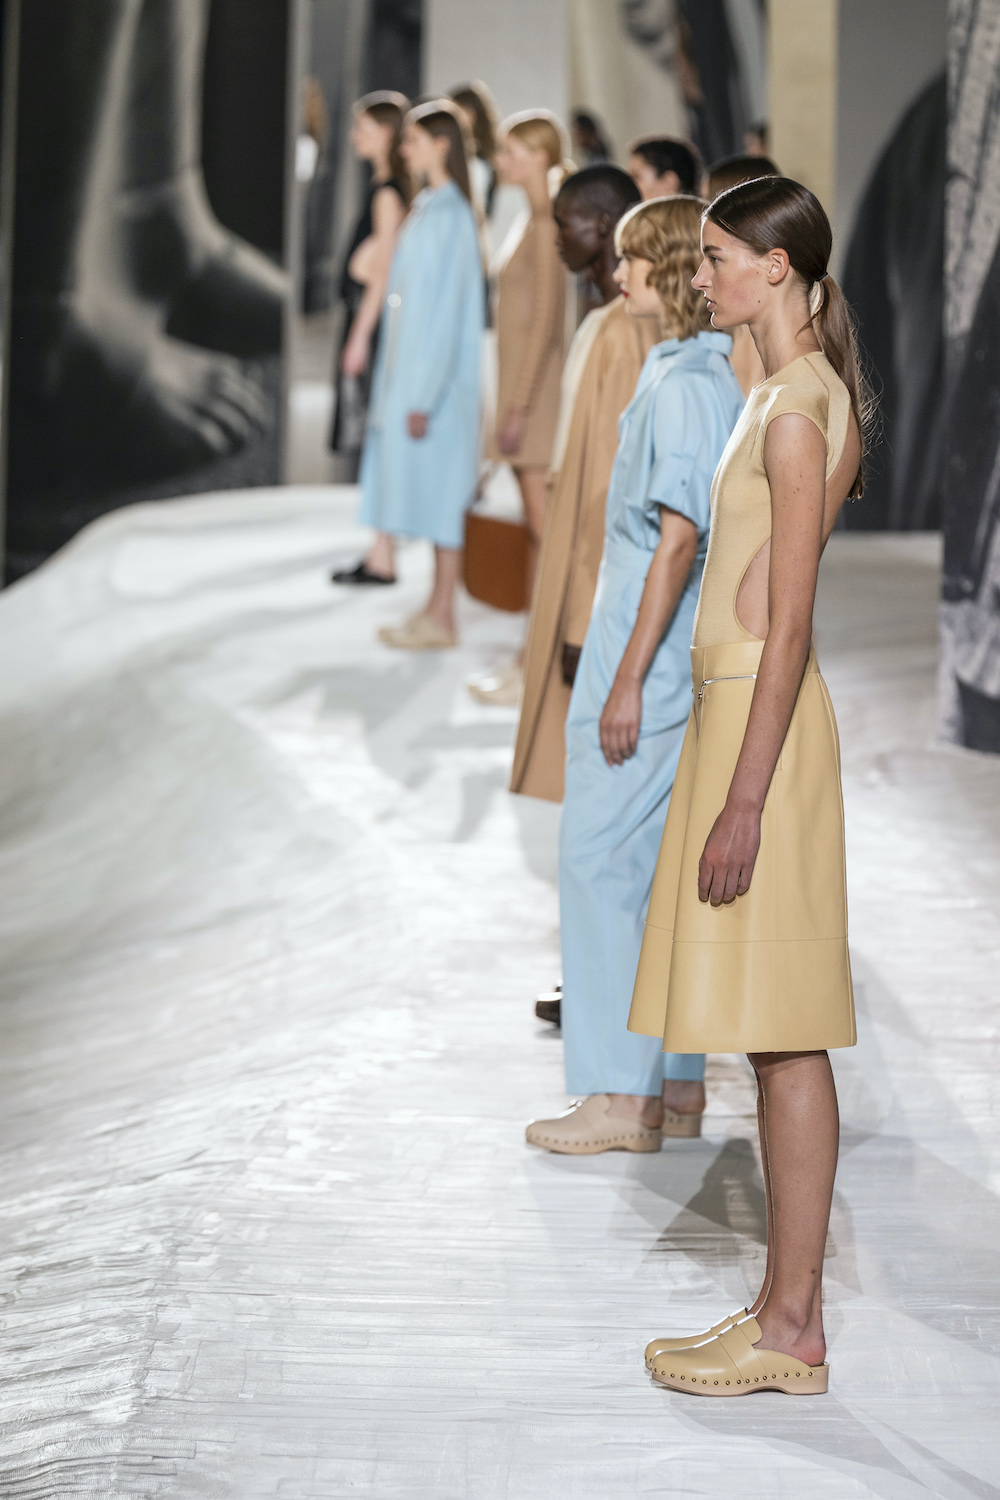 Hermès Does What Hermès Does Best for Spring/Summer 2021